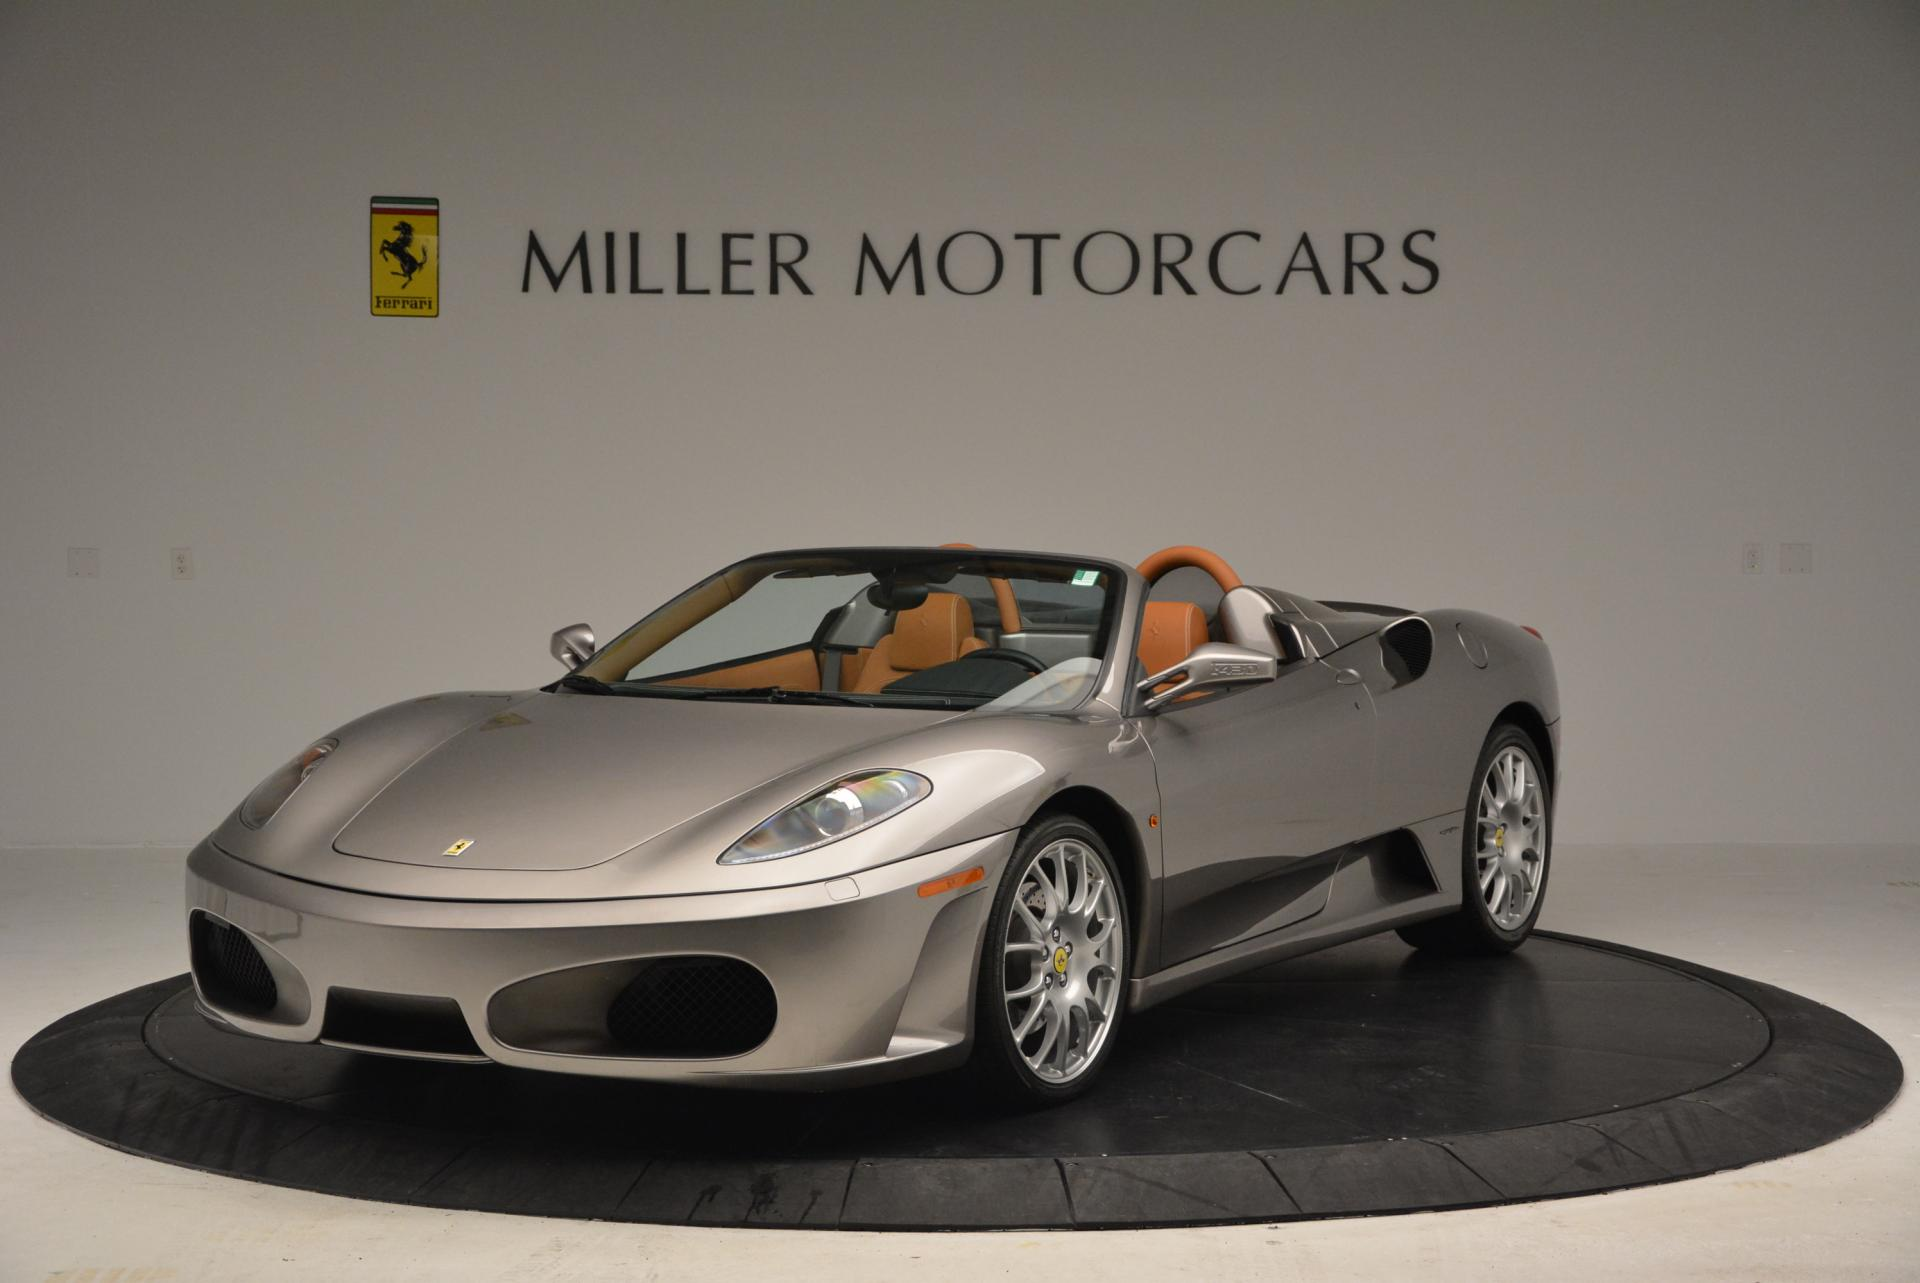 Used 2005 Ferrari F430 Spider 6-Speed Manual for sale Sold at Aston Martin of Greenwich in Greenwich CT 06830 1